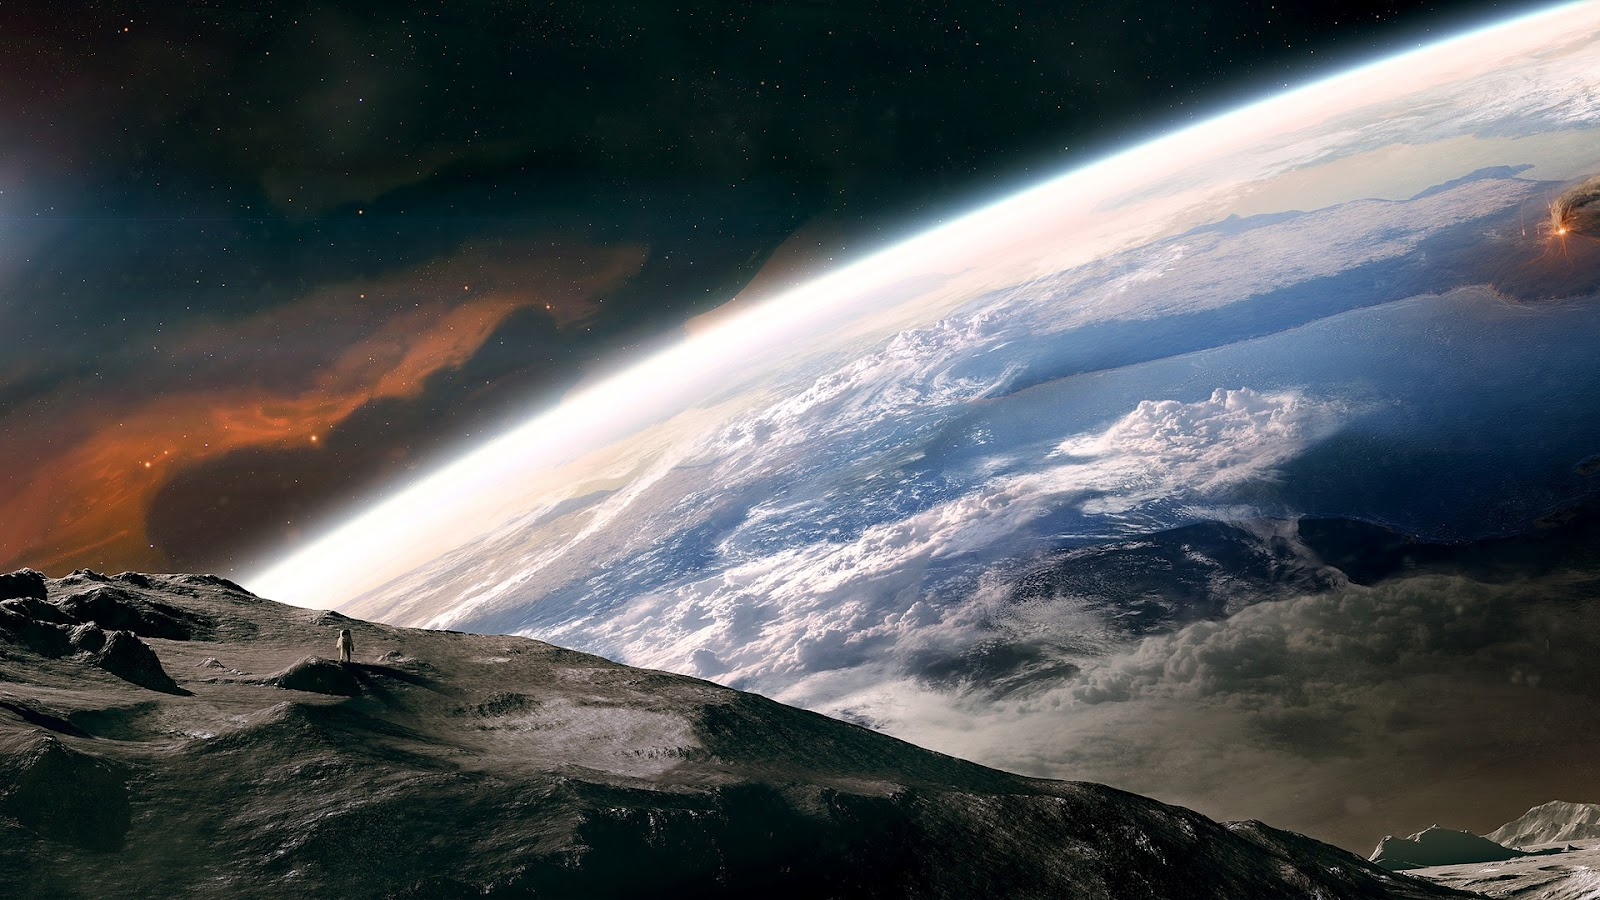 High Resolution Wallpaper: Space Wallpapers #2